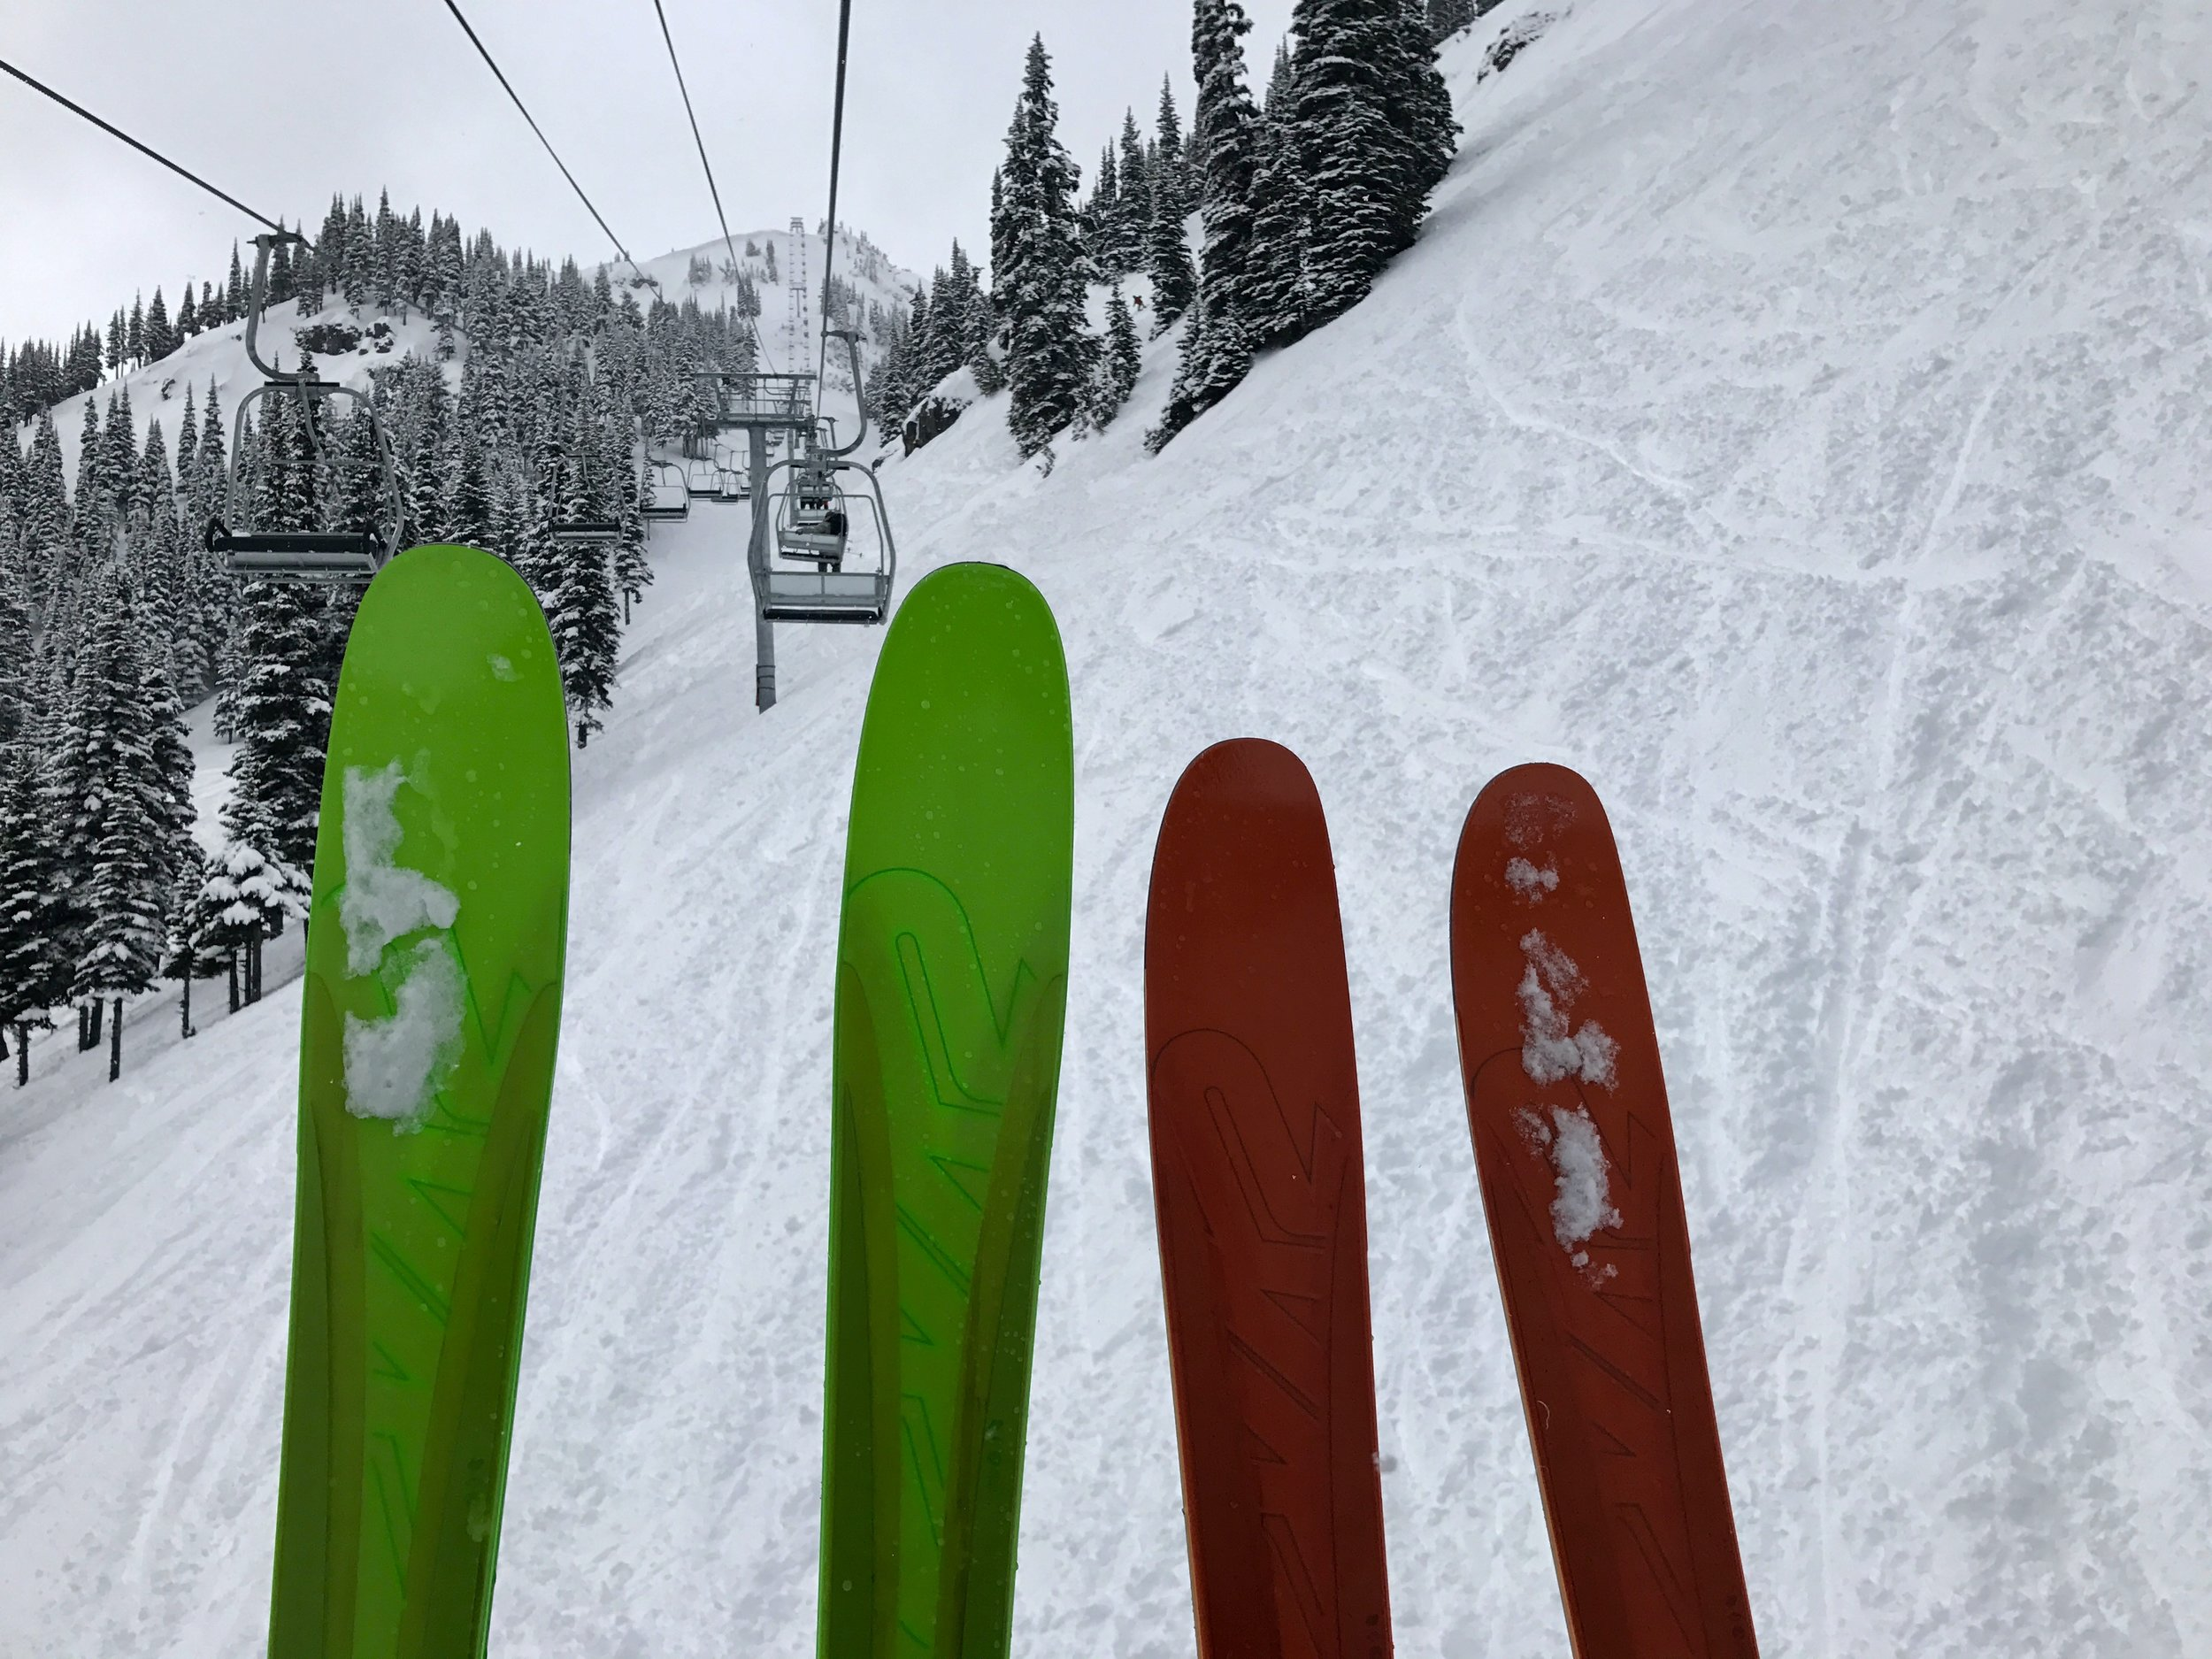 The Greenest skis you've seen?